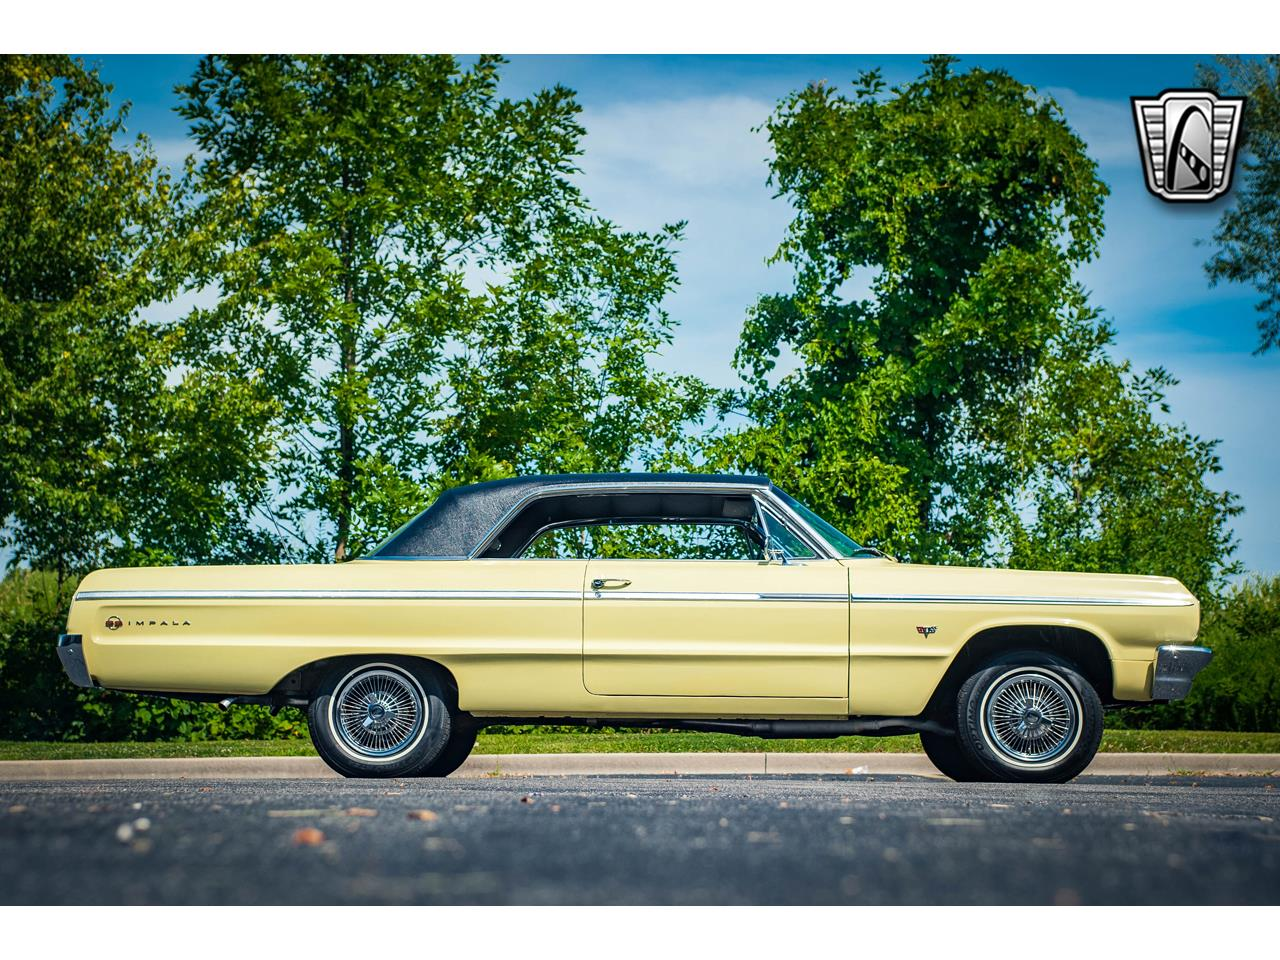 Large Picture of Classic 1964 Chevrolet Impala located in O'Fallon Illinois - $45,000.00 Offered by Gateway Classic Cars - St. Louis - QRDR